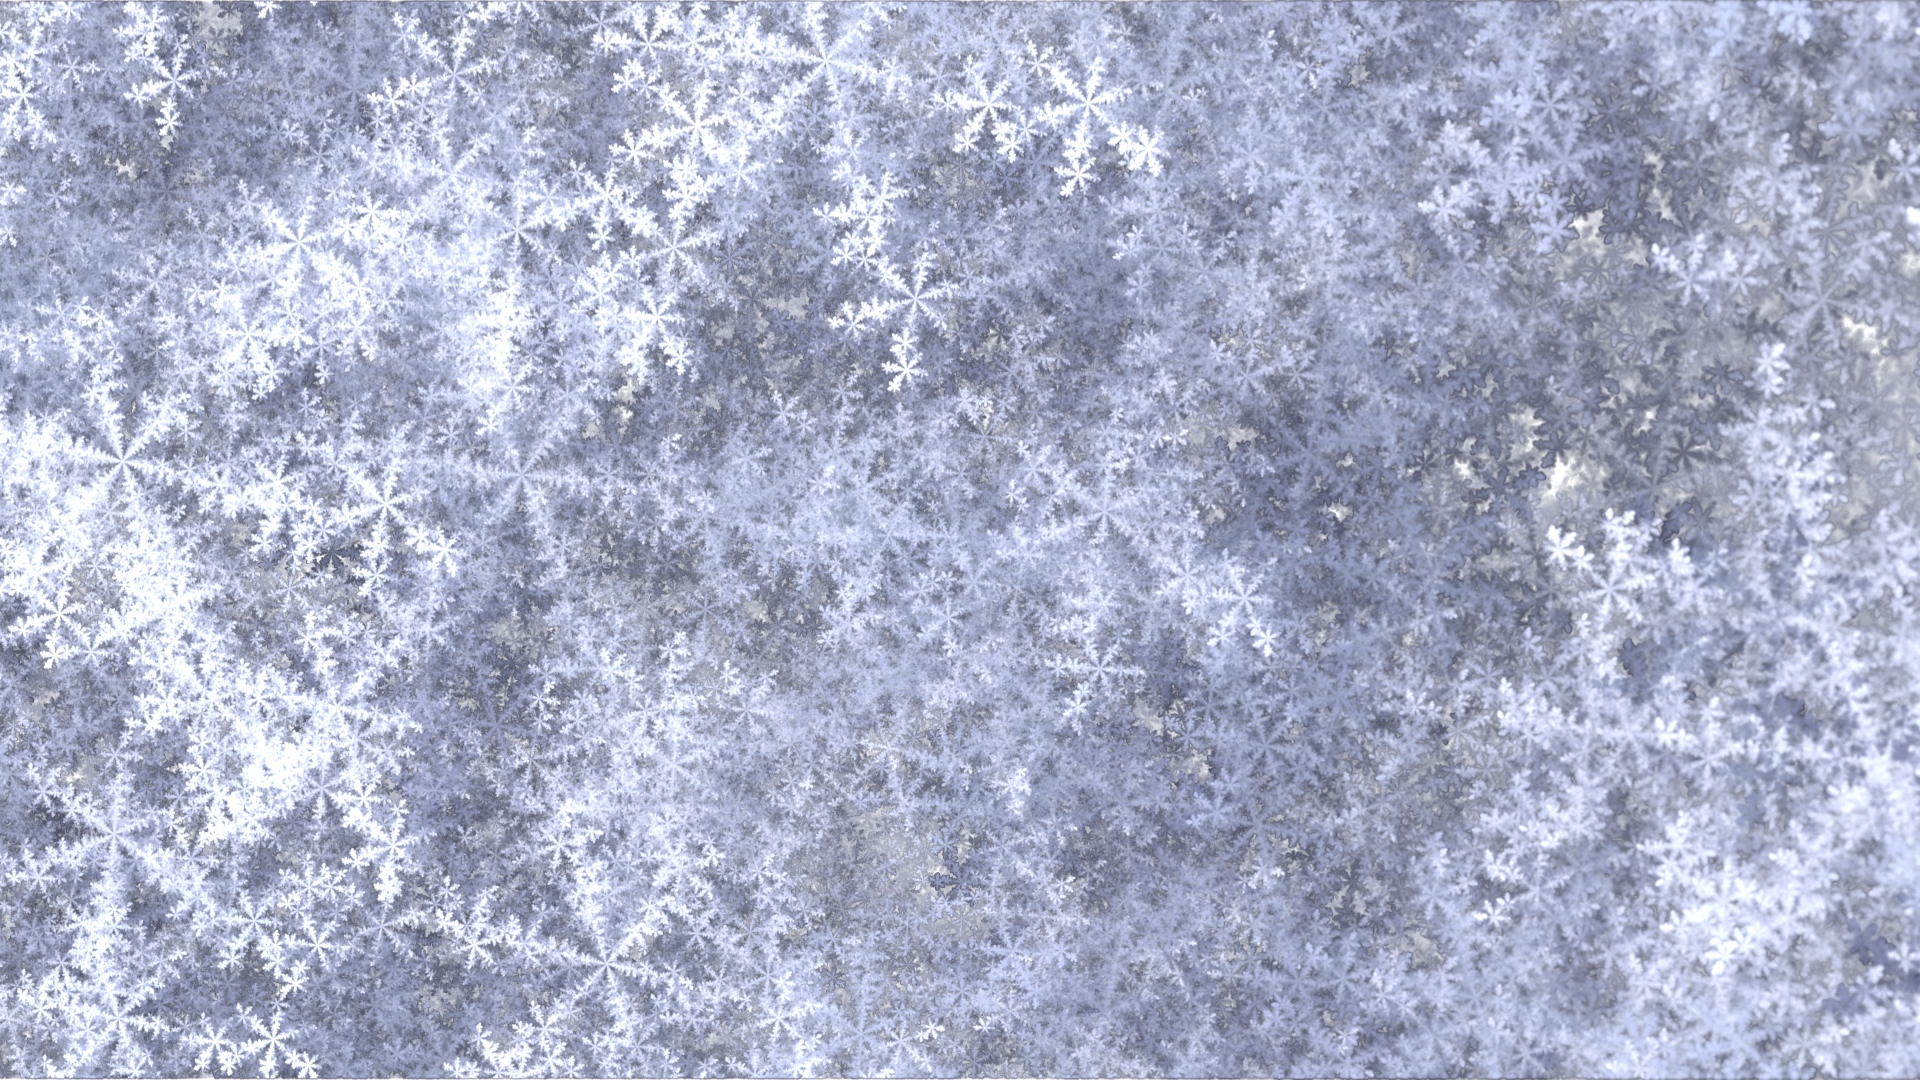 45 Fall Snowy Wallpaper On Wallpapersafari